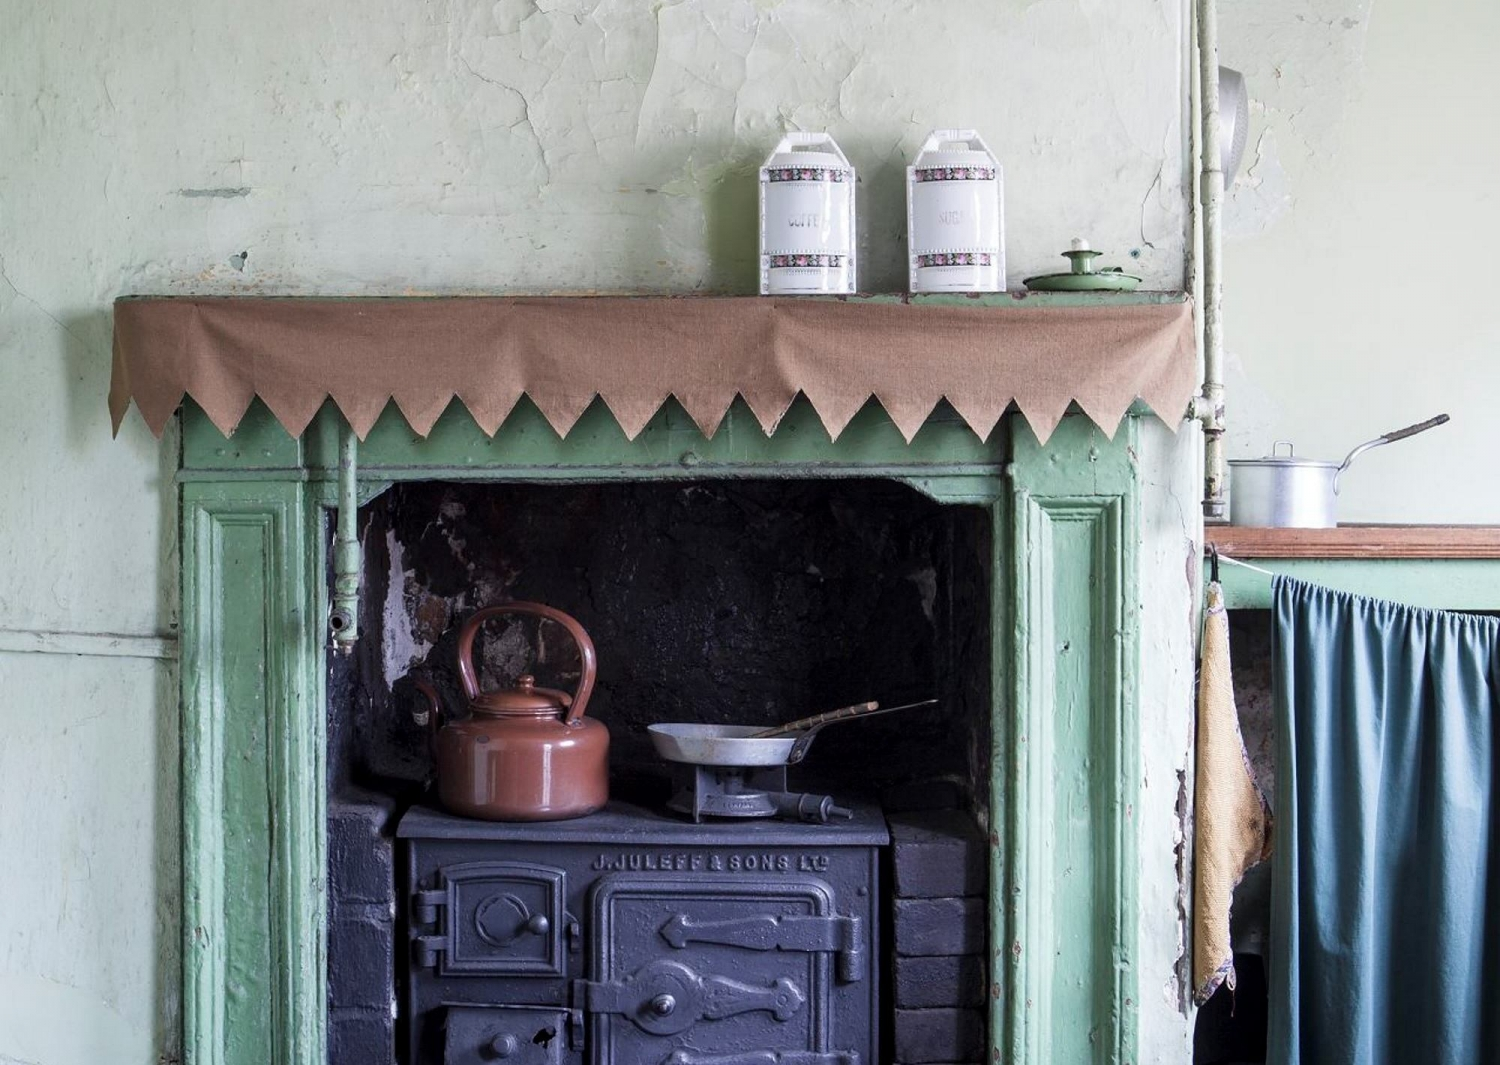 Detail view of the Juleff & Sons cast iron fuel stove in the kitchen at 60 Gloucester Street, The Rocks.